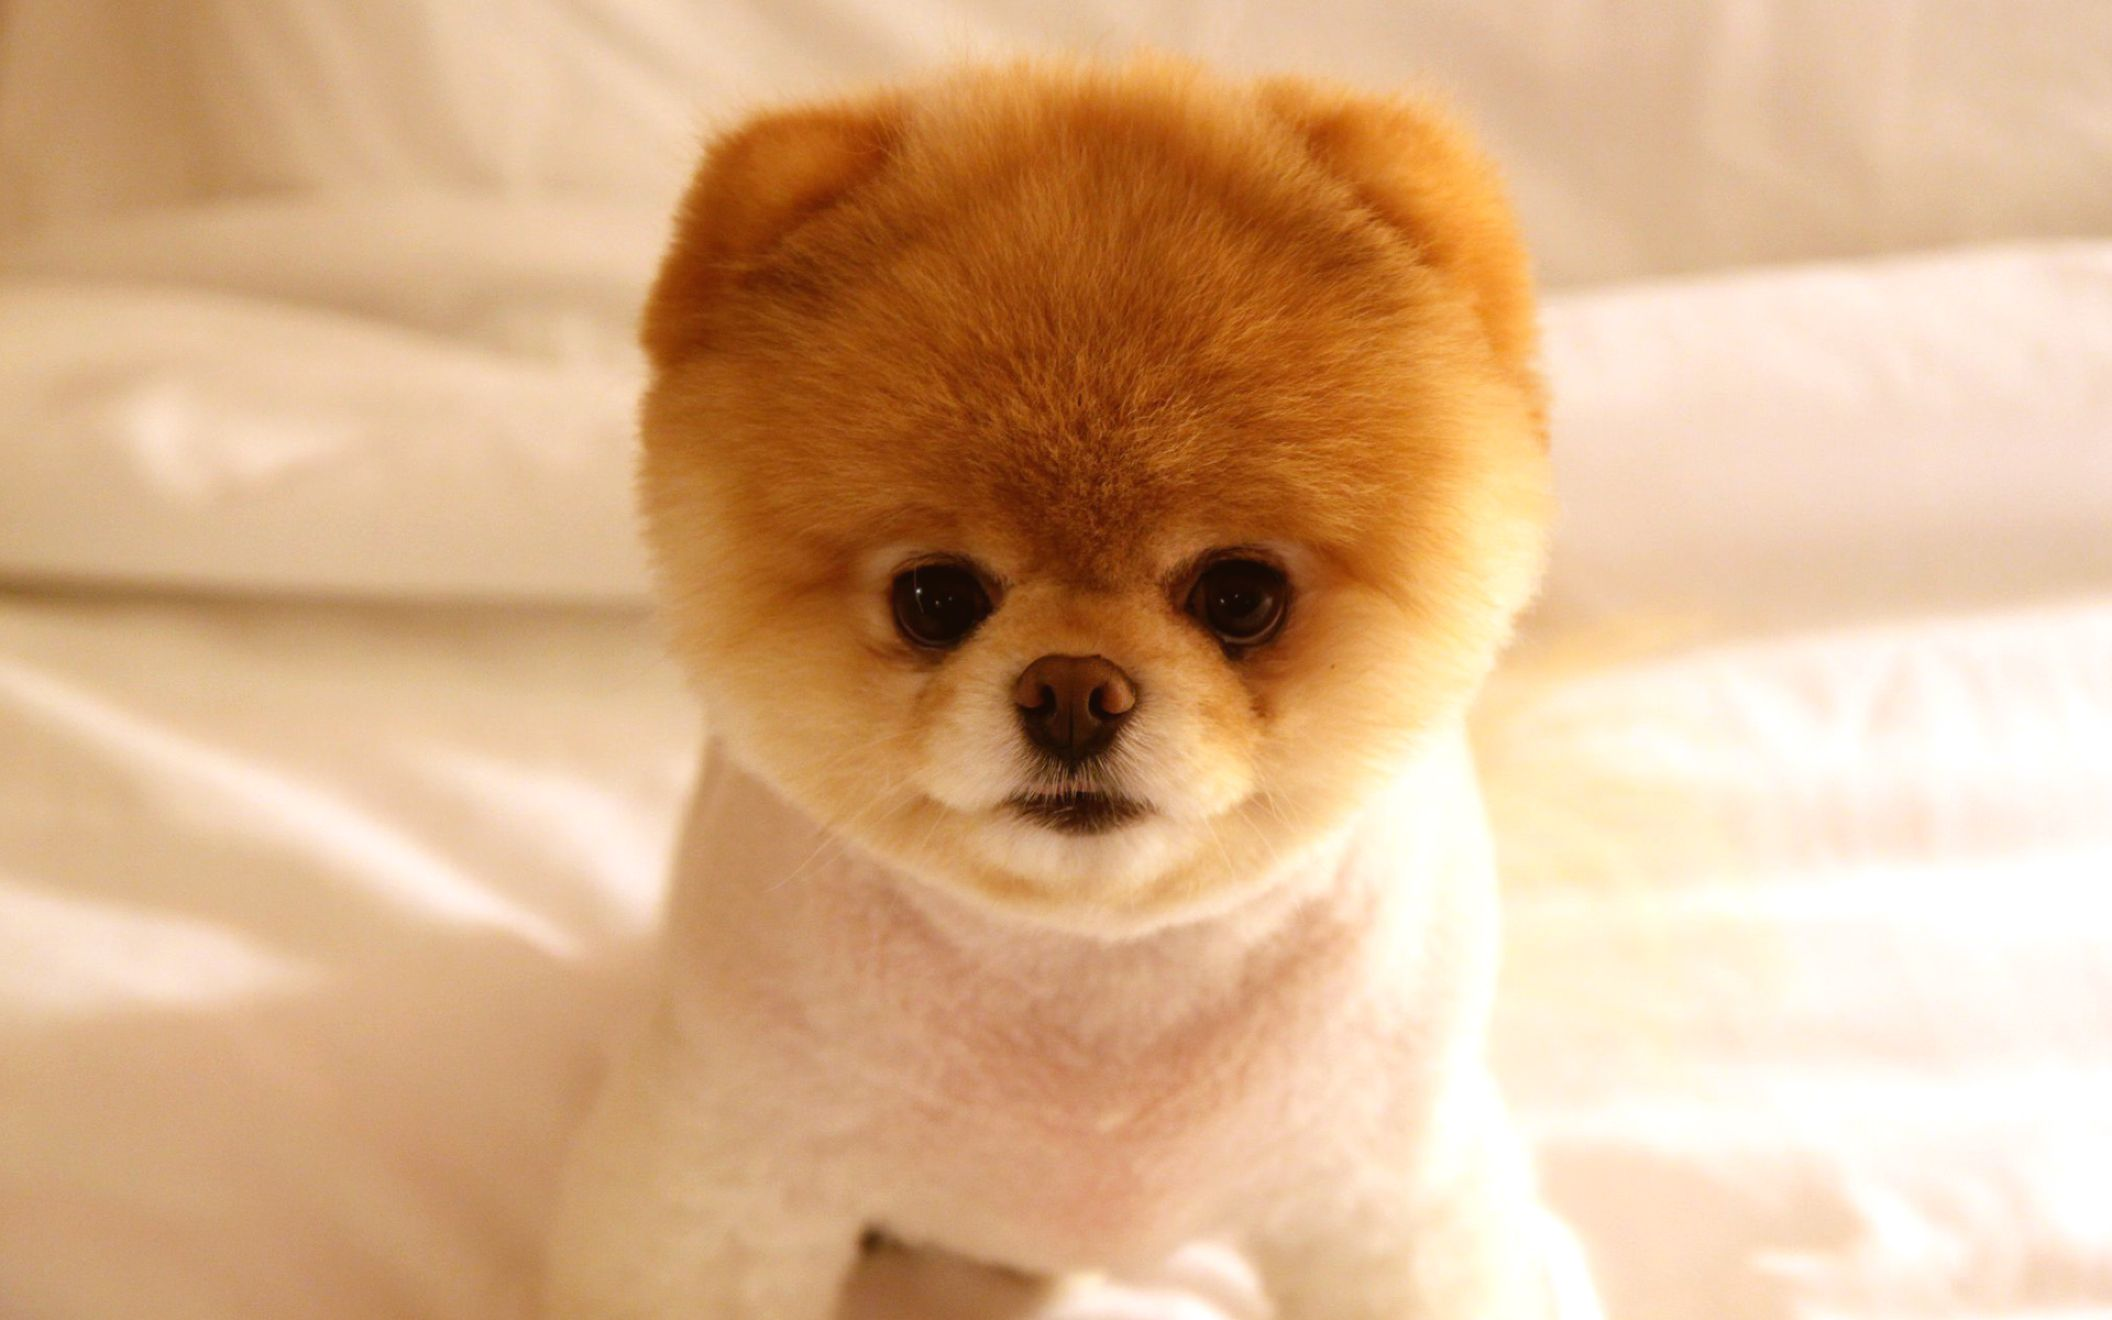 Download free HD Cute Dog Boo Wide Wallpaper, image